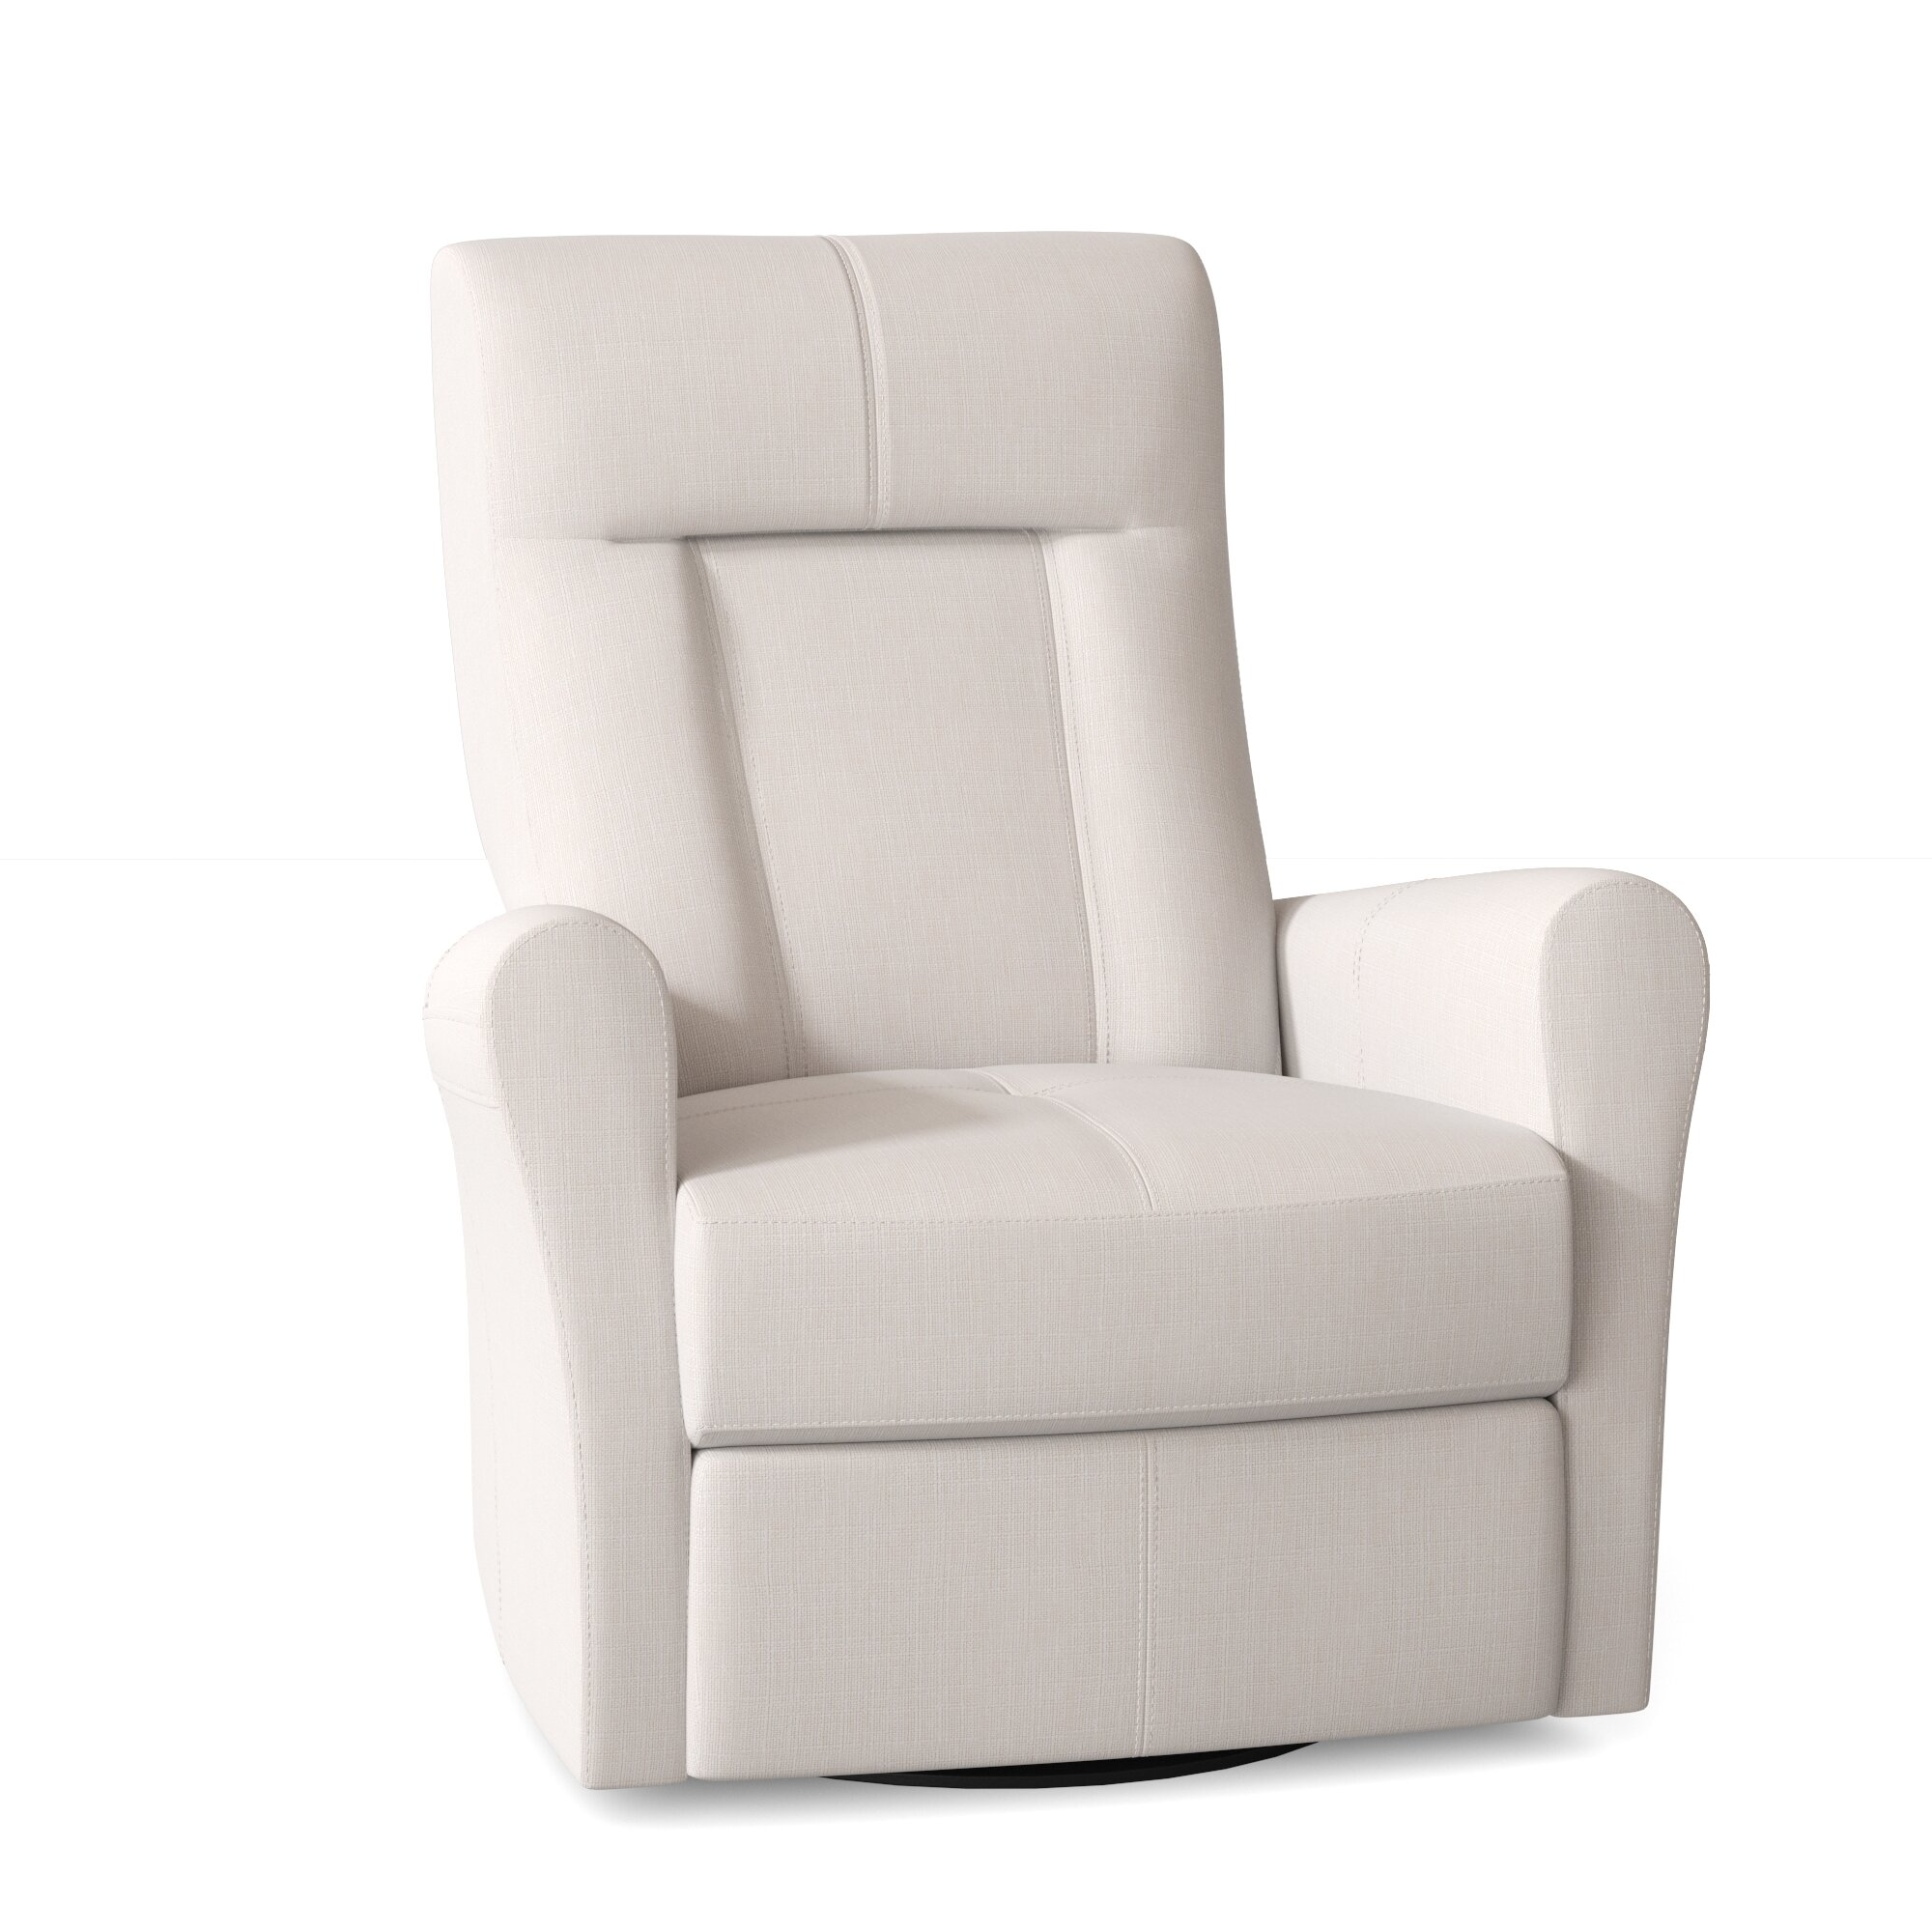 Manual Handle Lever Swivel Glider Recliners You Ll Love In 2021 Wayfair